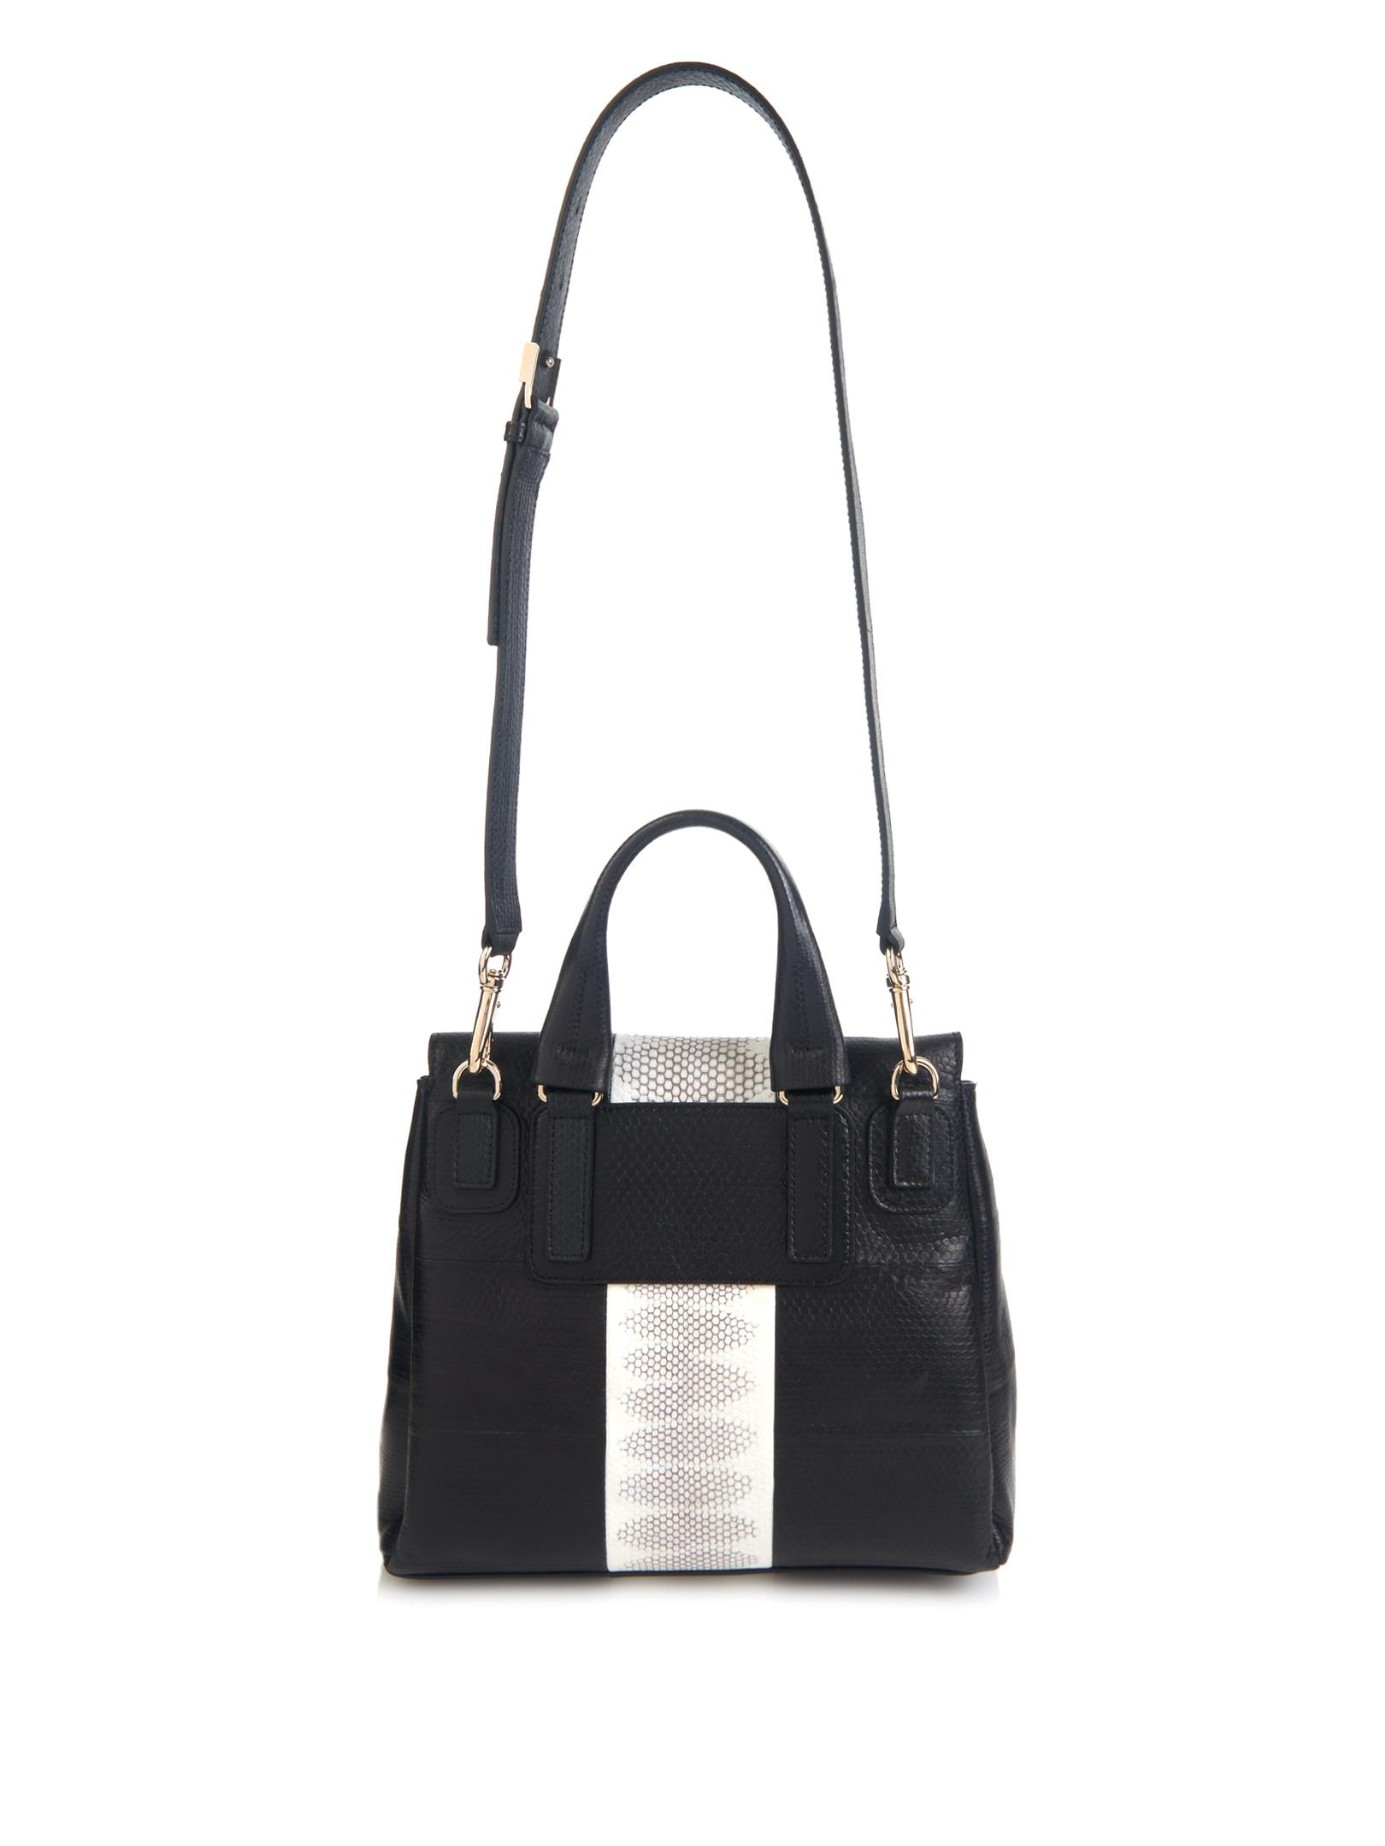 94cbe065fb Givenchy Pandora Pure Small Snakeskin Shoulder Bag in Black - Lyst